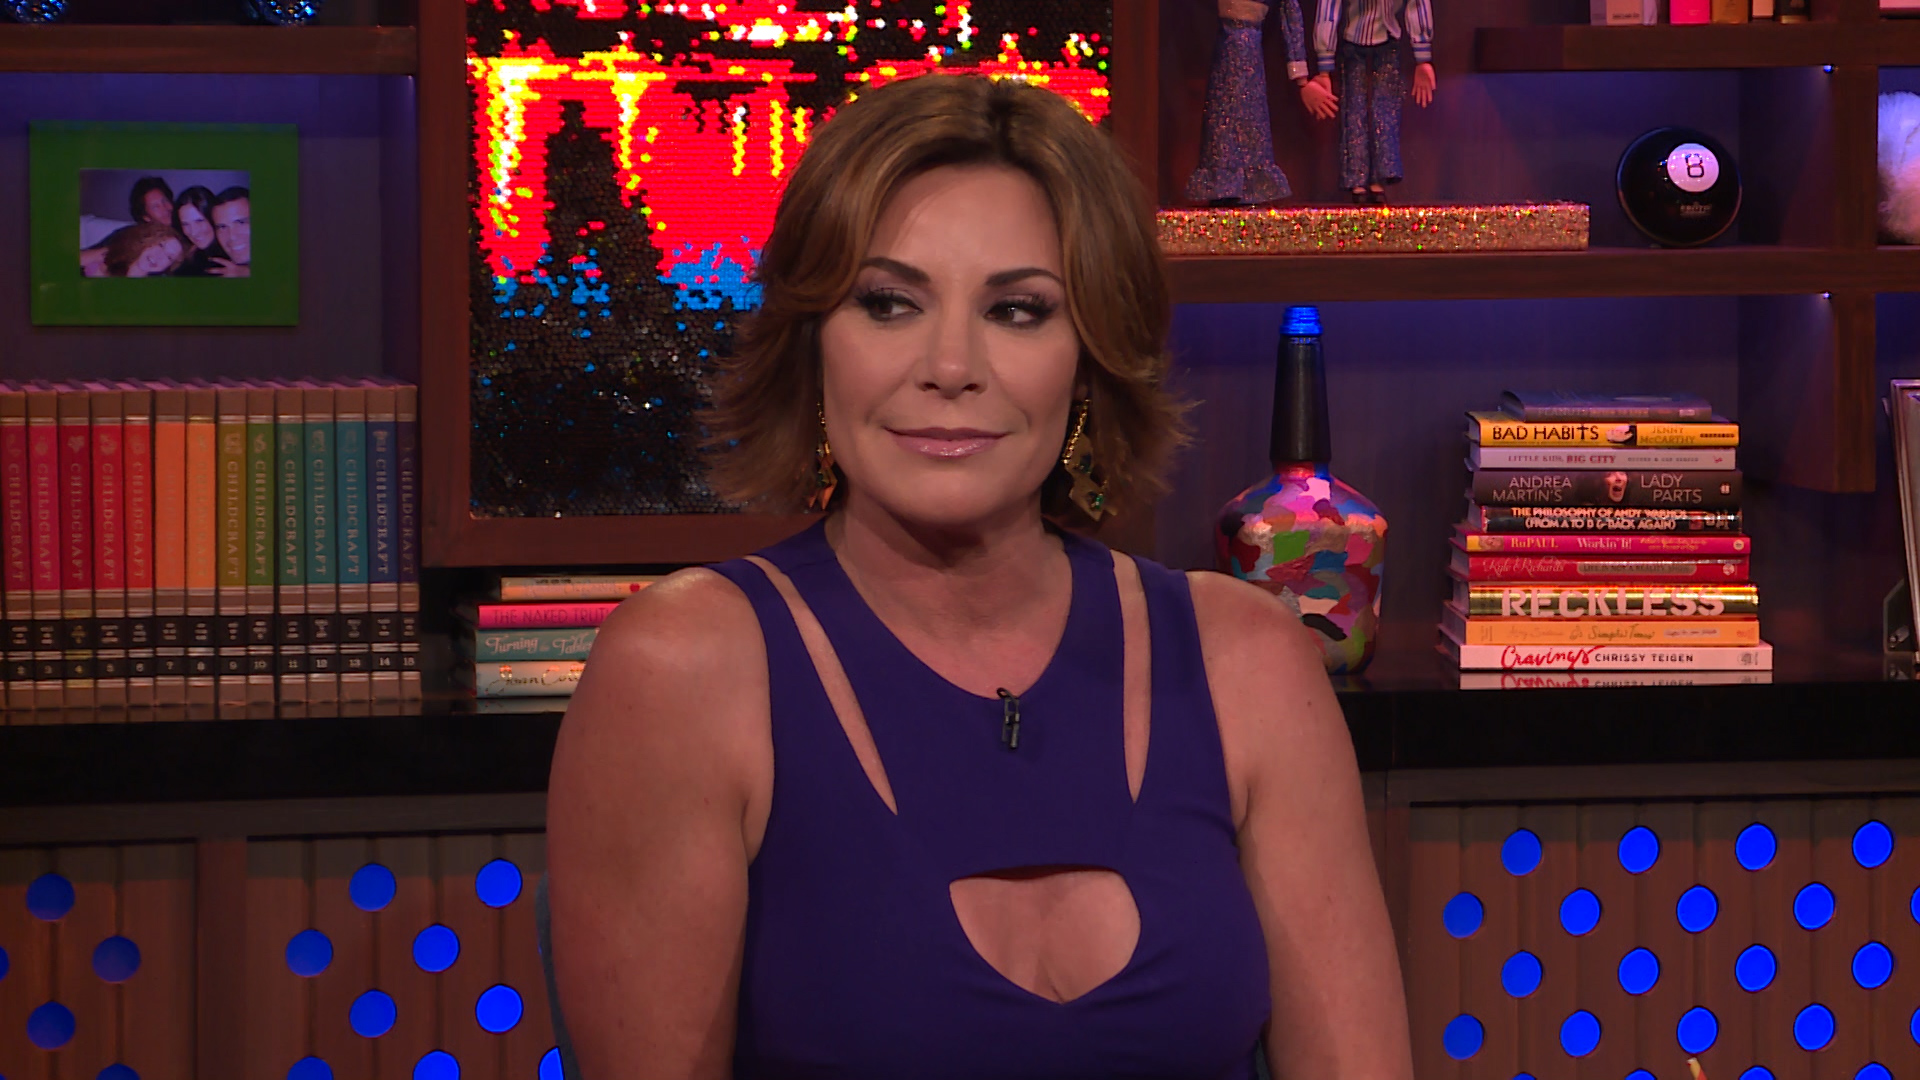 Are Luann & Tom Really Fighting in Public?